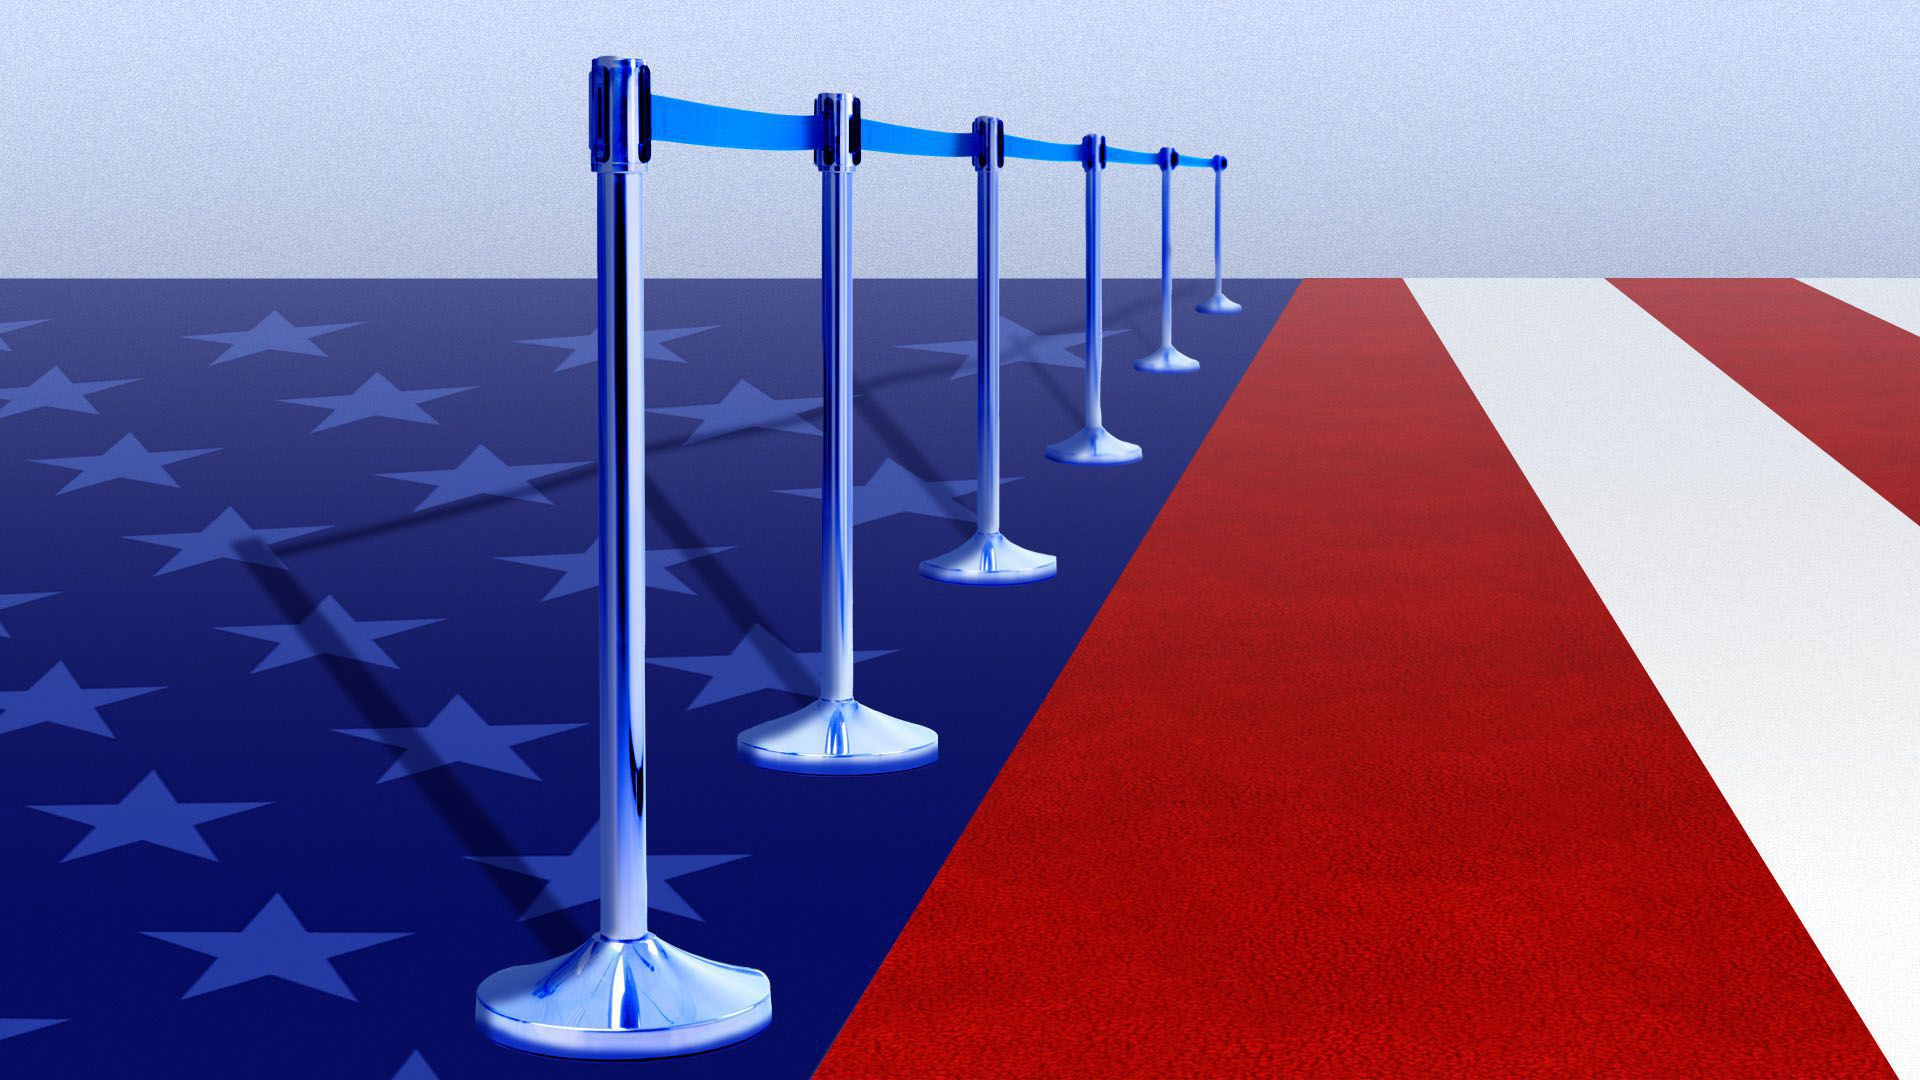 An illustration of the American flag with queue line ropes.